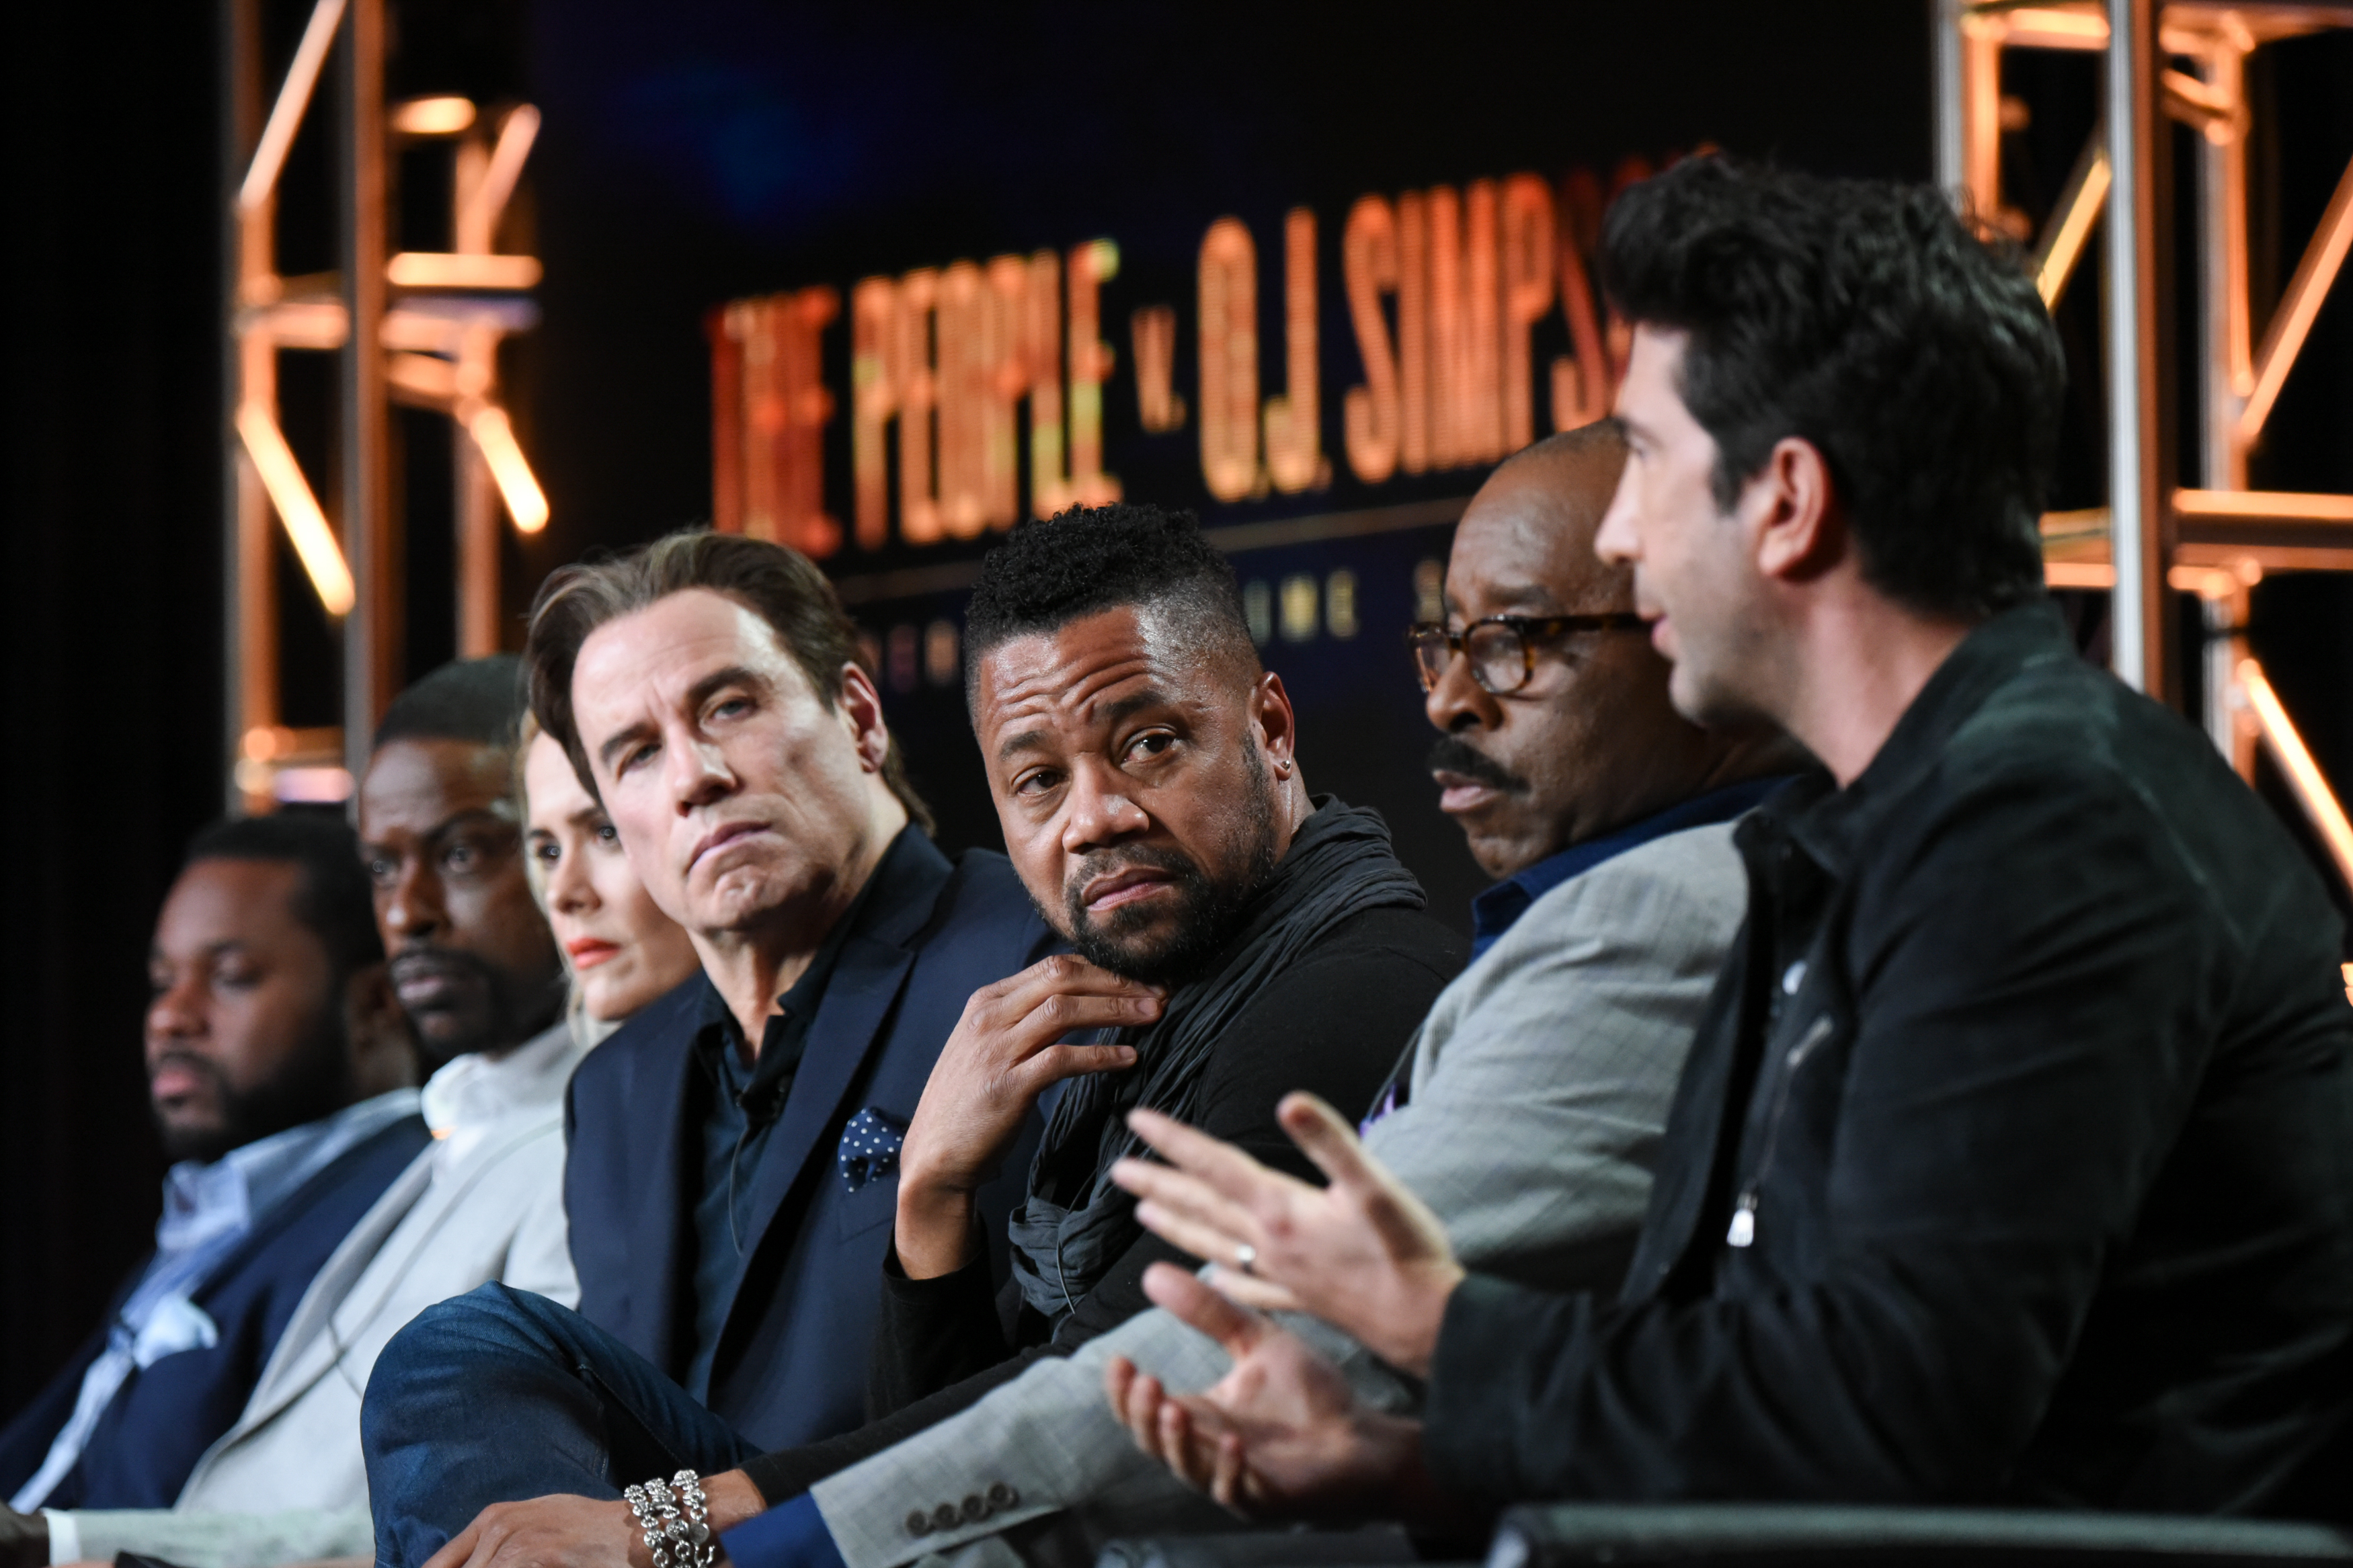 Nation of TV viewers captivated by FX's 'O.J. Simpson' drama